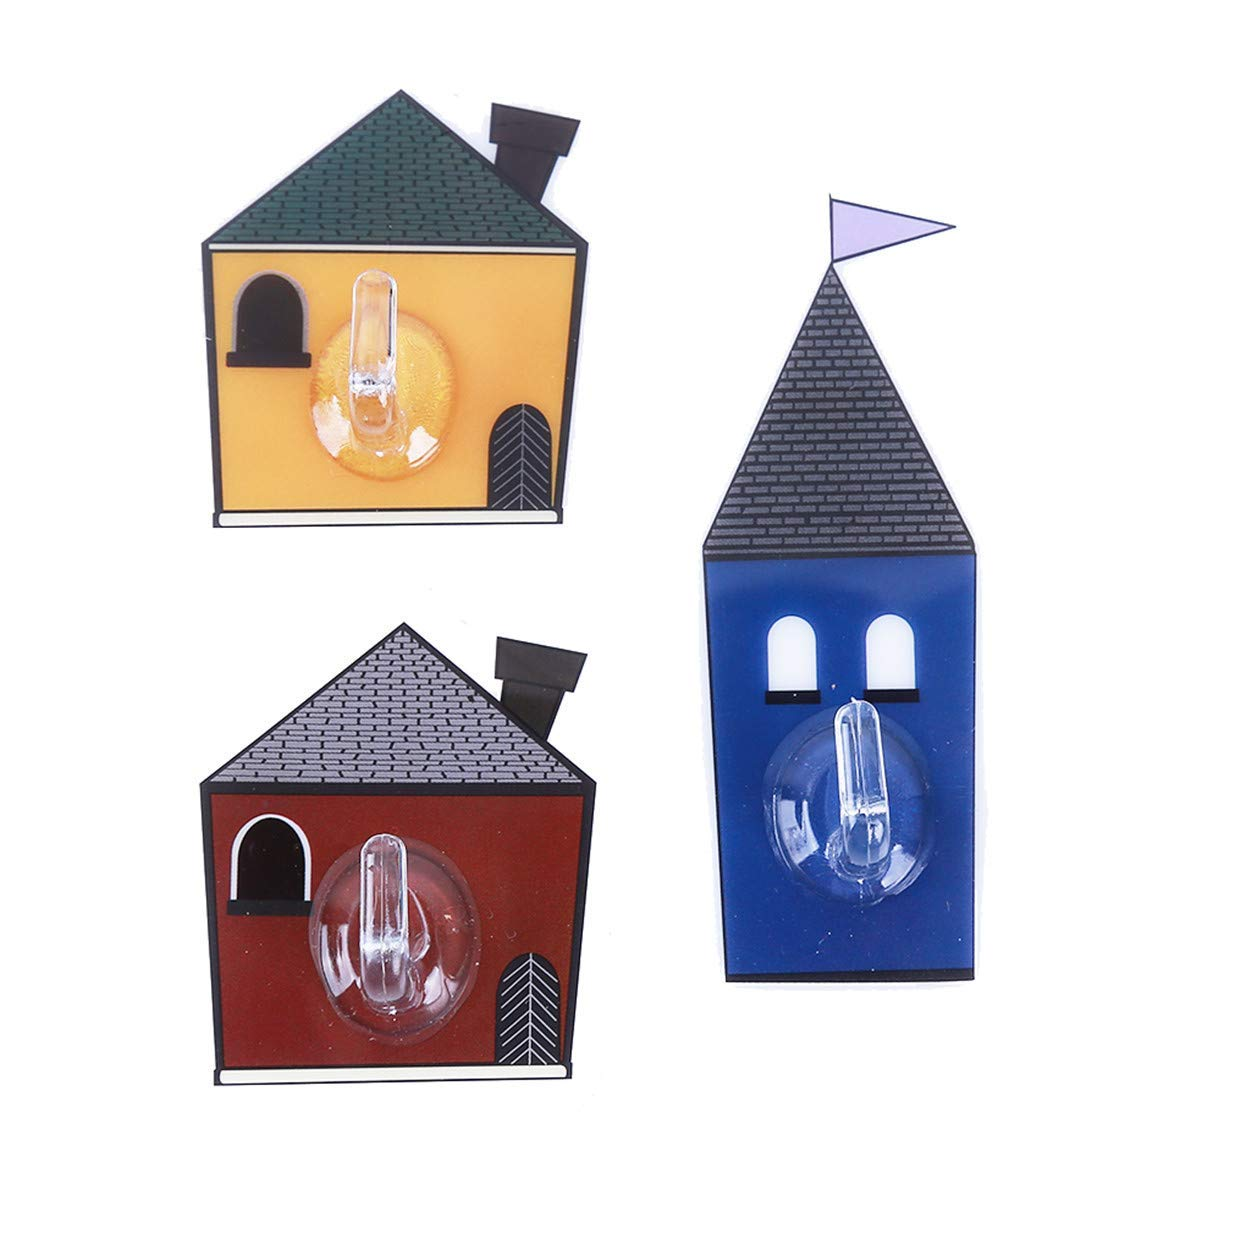 Tcplyn Durable 3Pcs/Set Cartoon Cabin Sticky No Trace Hook Clothes Bag Keys Towels Holder Kitchen Storage Rack